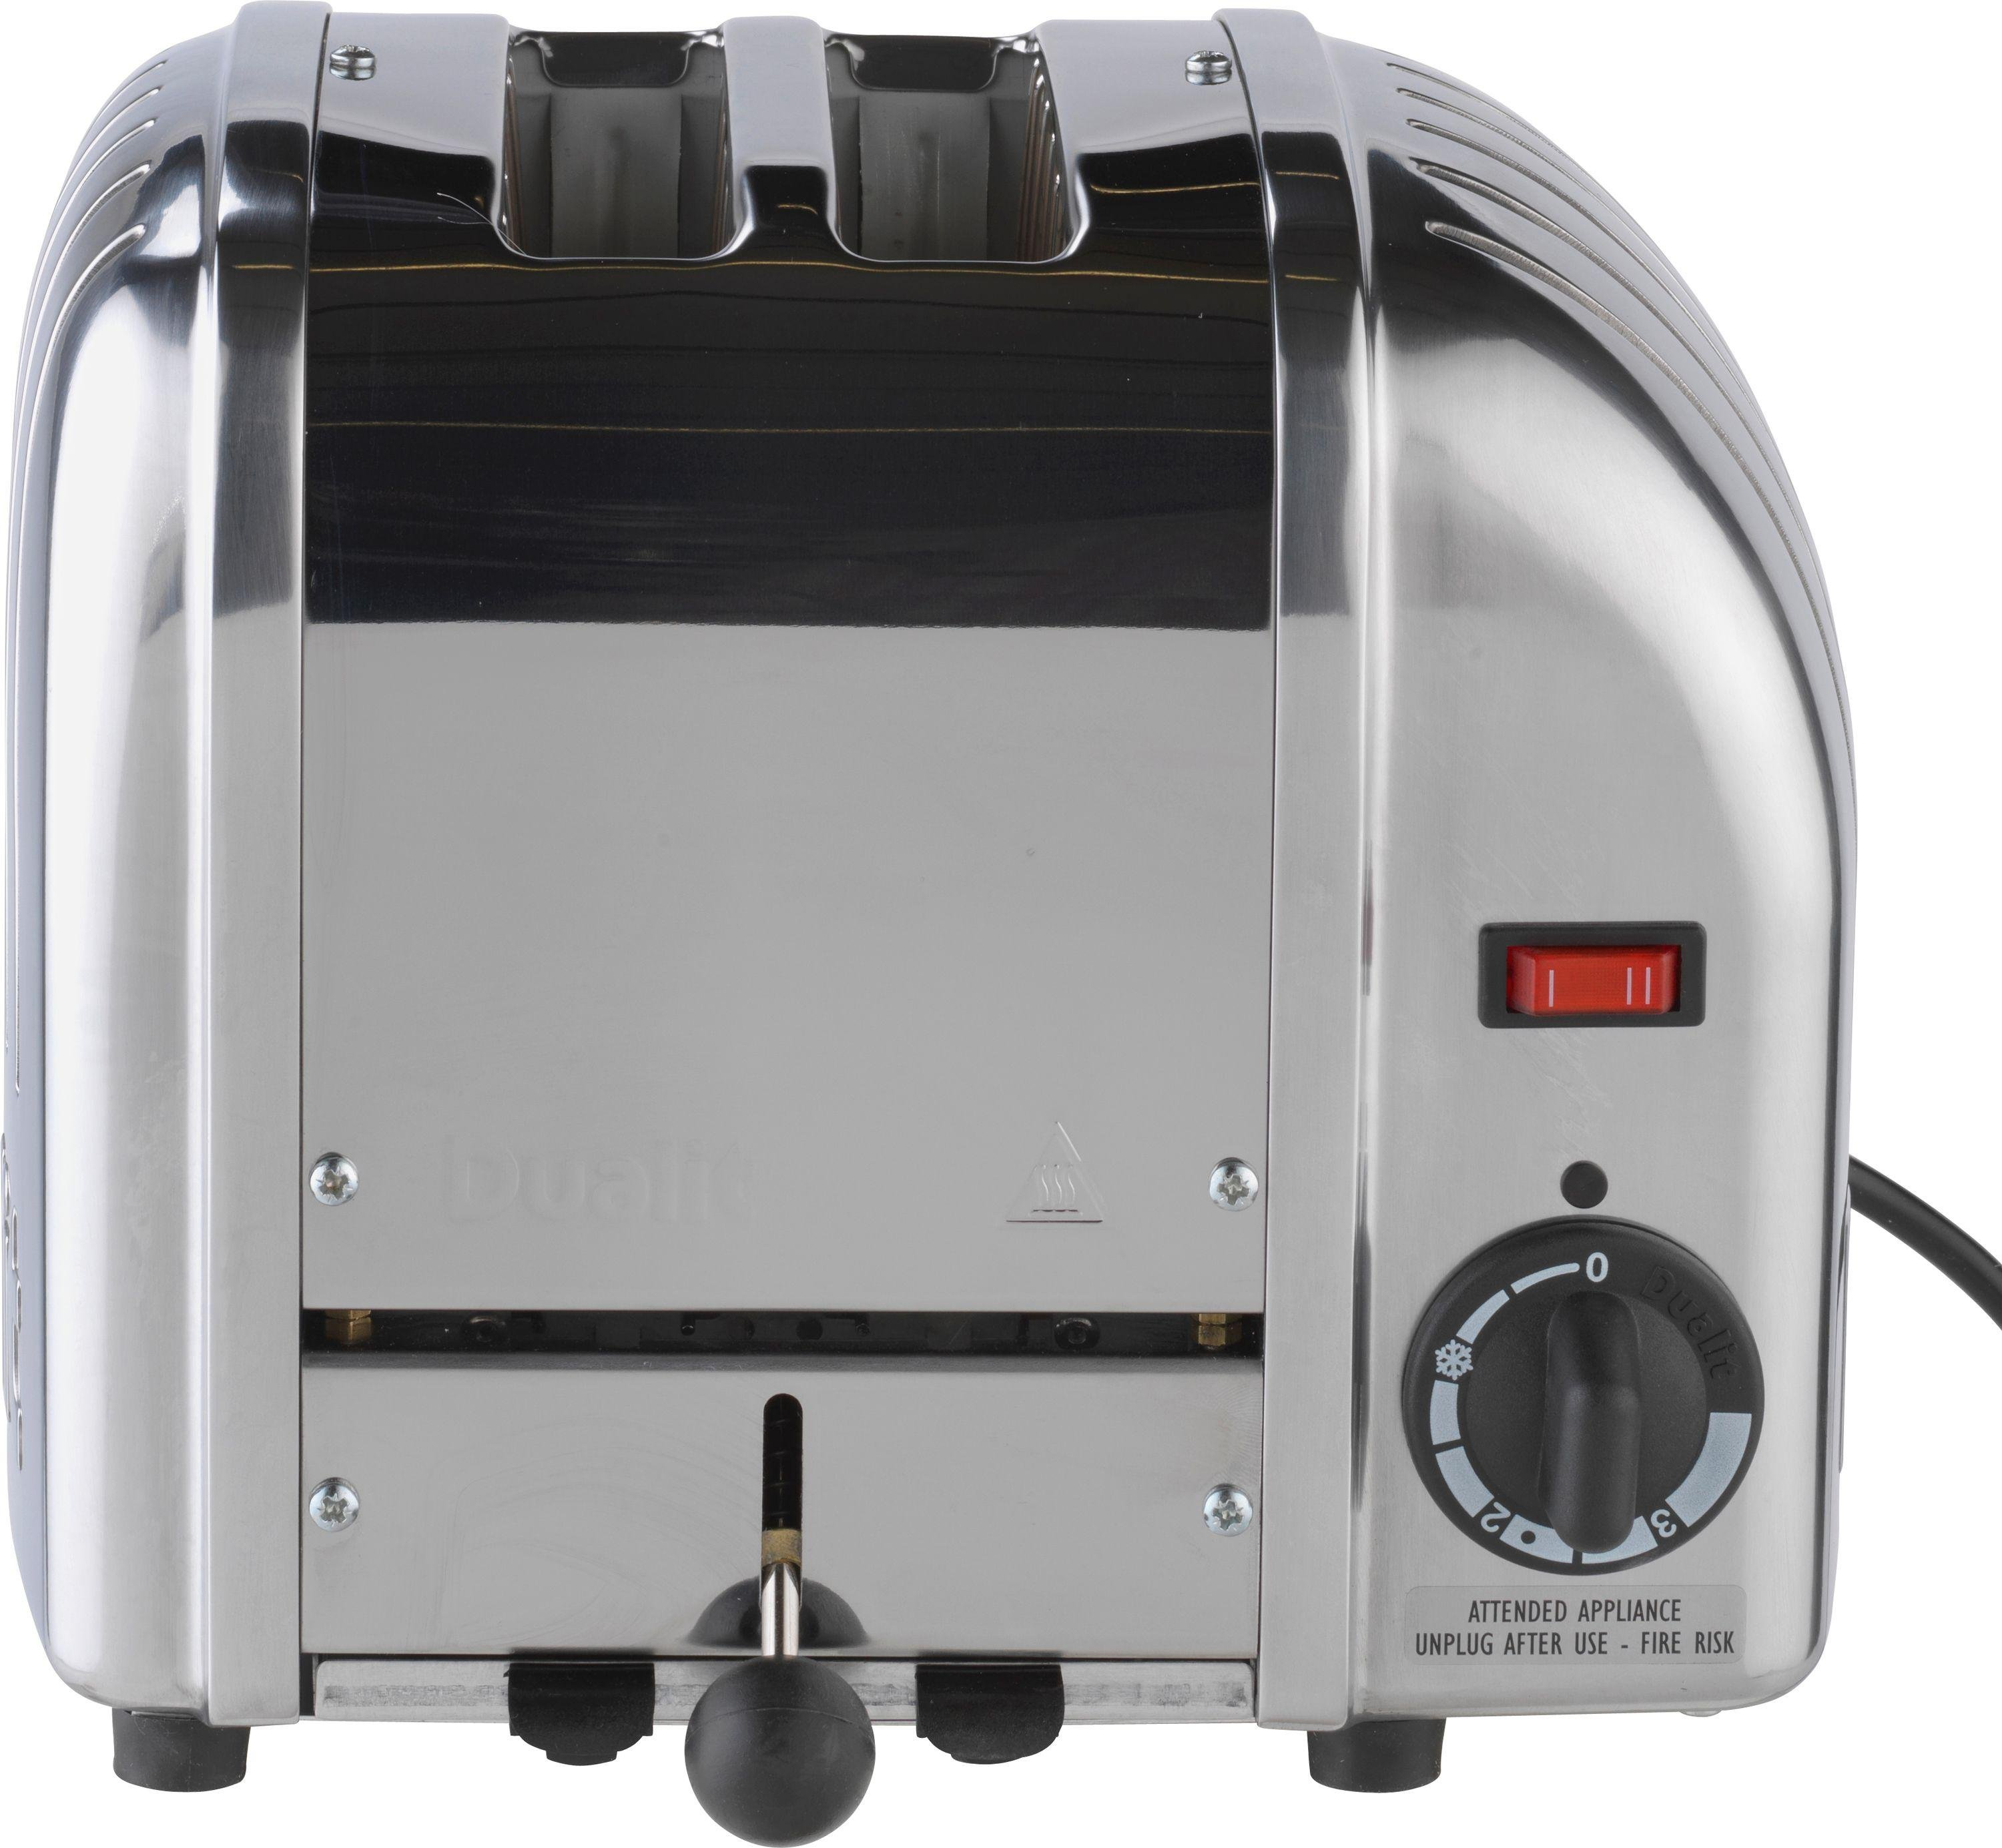 Buy Dualit Vario 2 Slice Toaster Stainless Steel at Argos